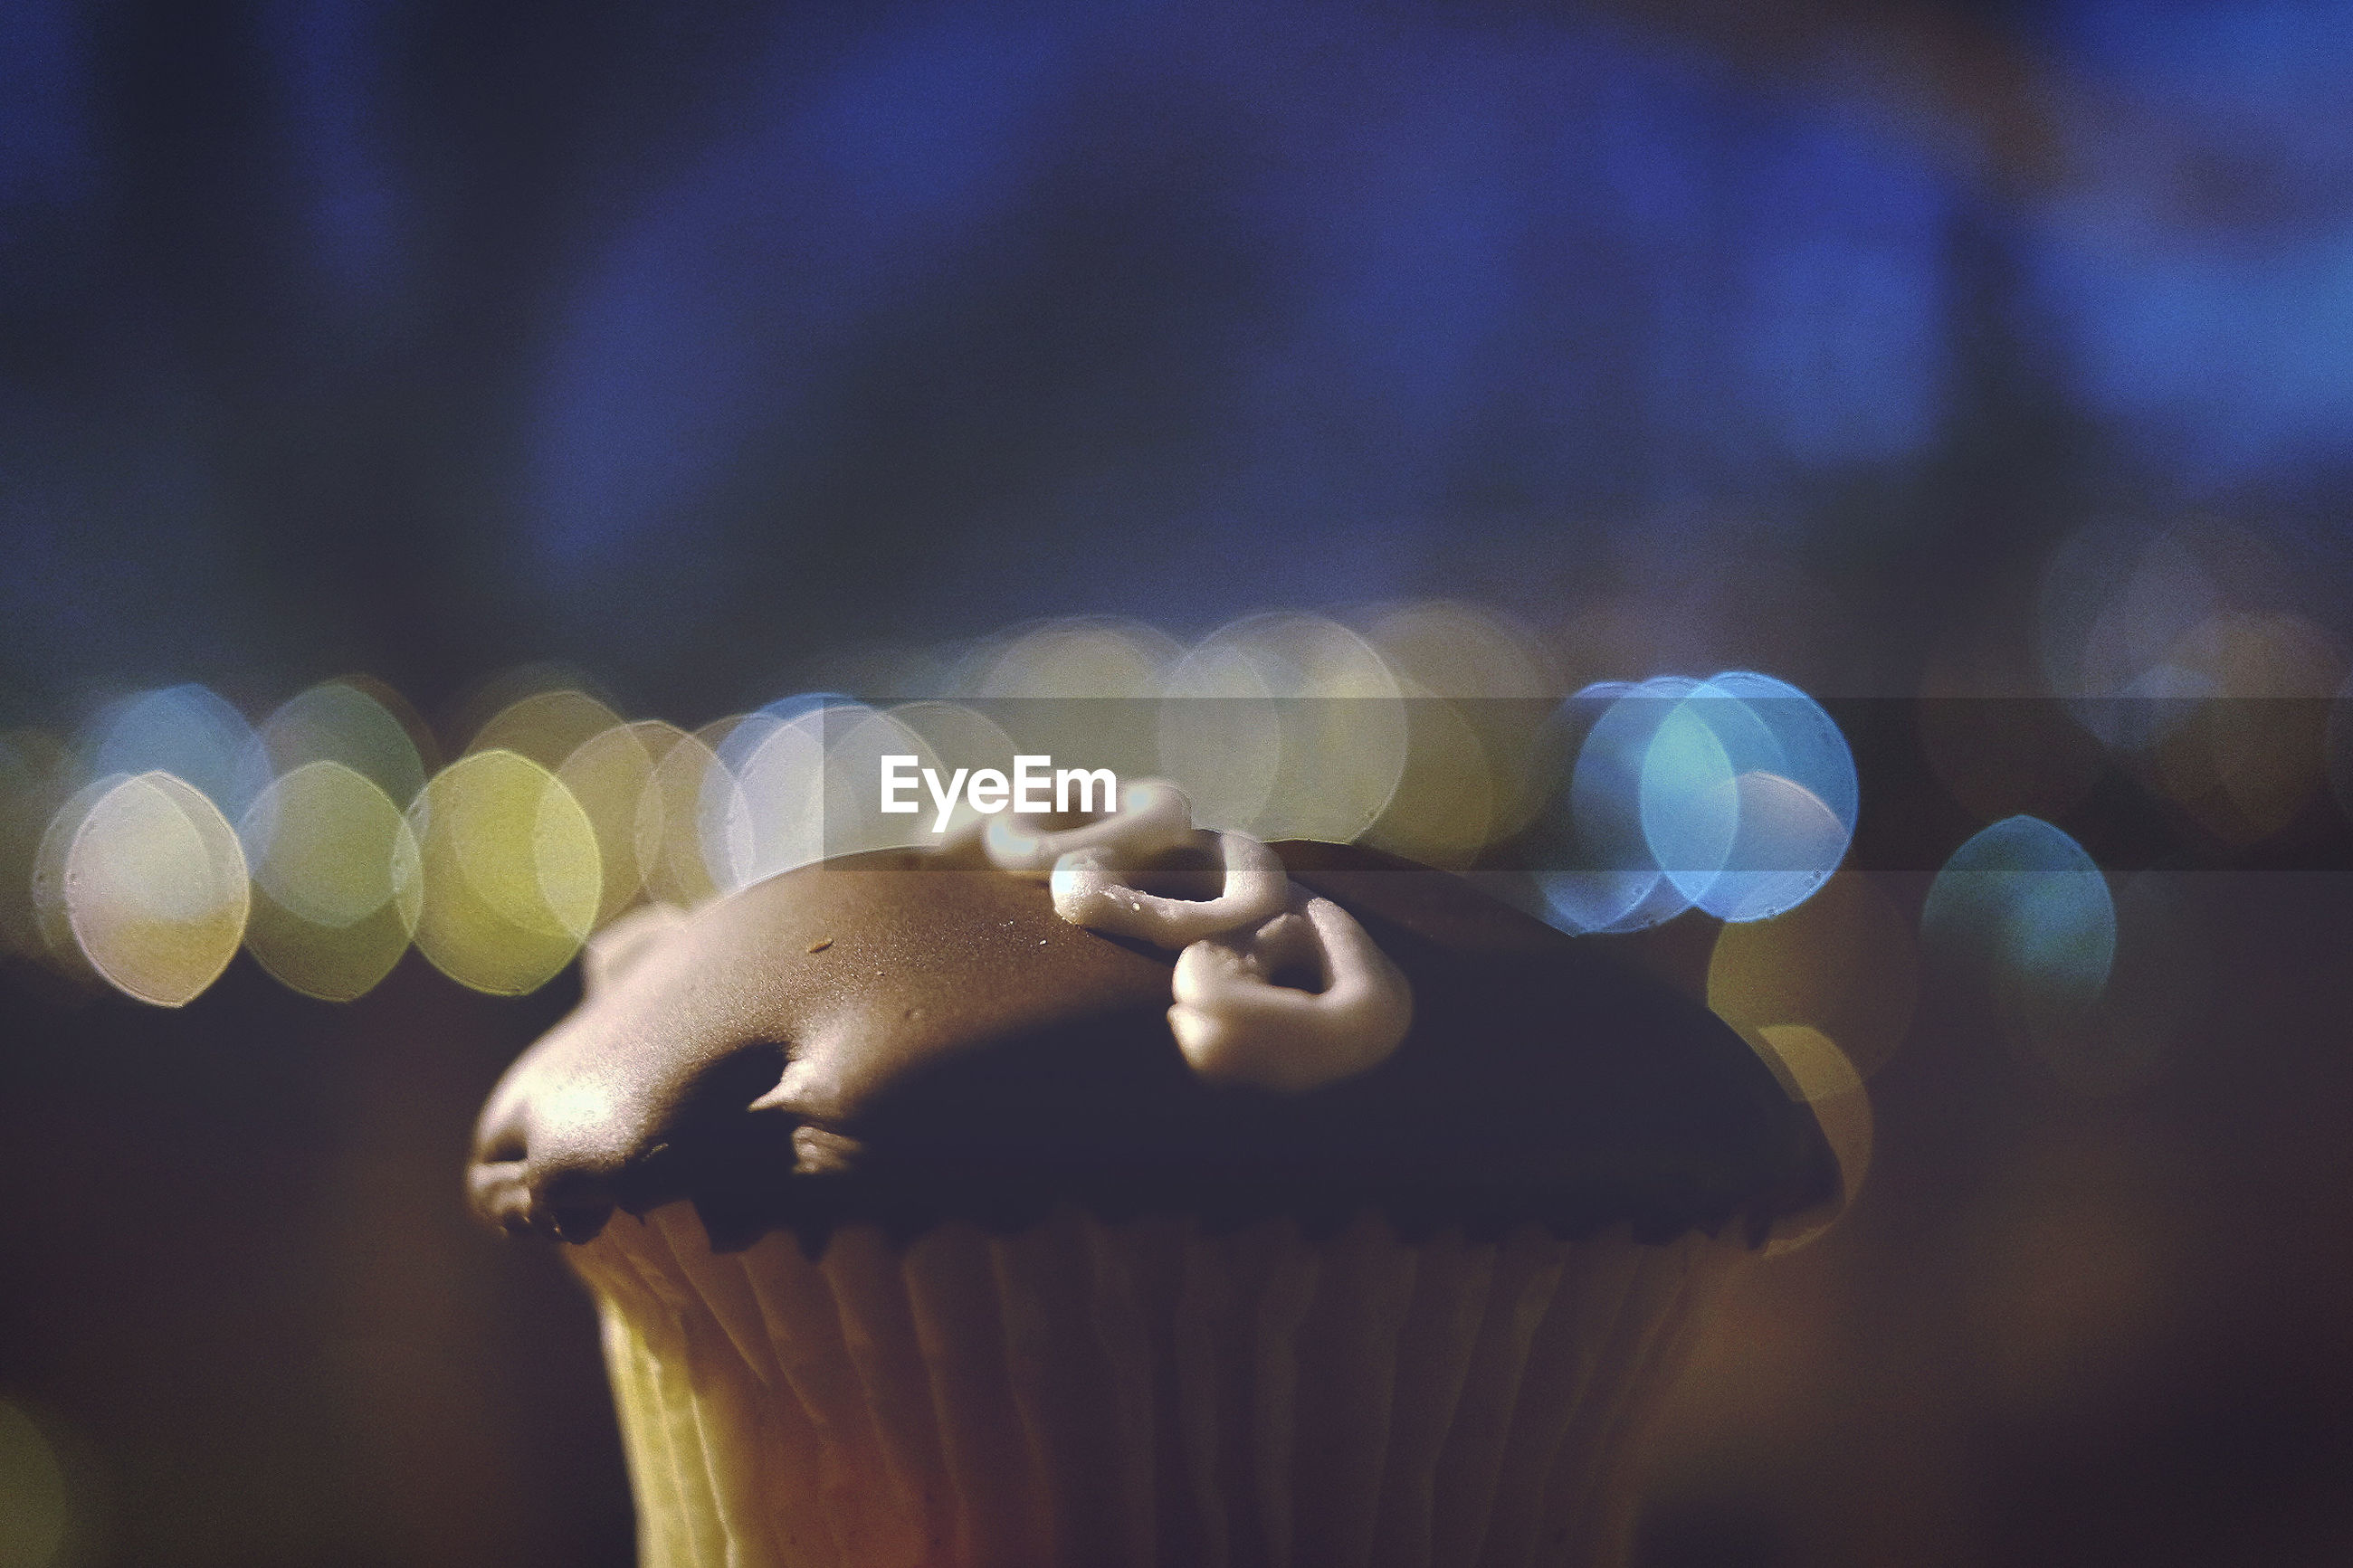 Close-up of cup cake against blurred background